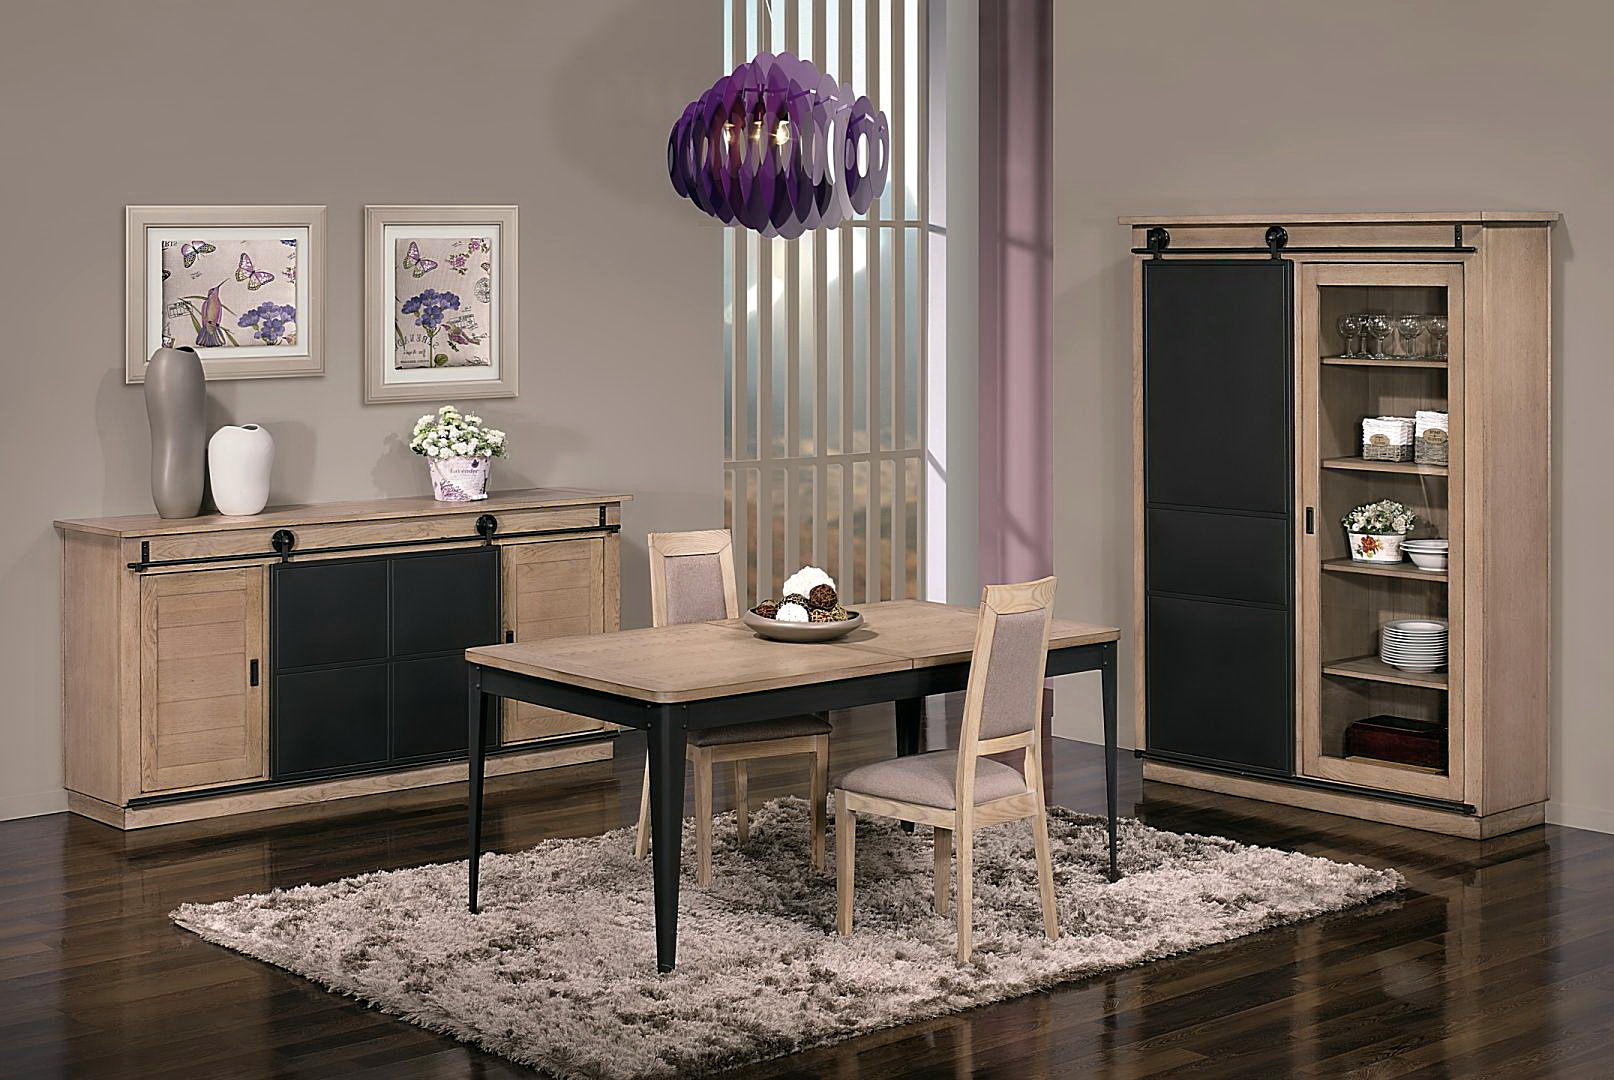 Loft sal n estilo industrial by antika muebles anto n - Salon estilo industrial ...